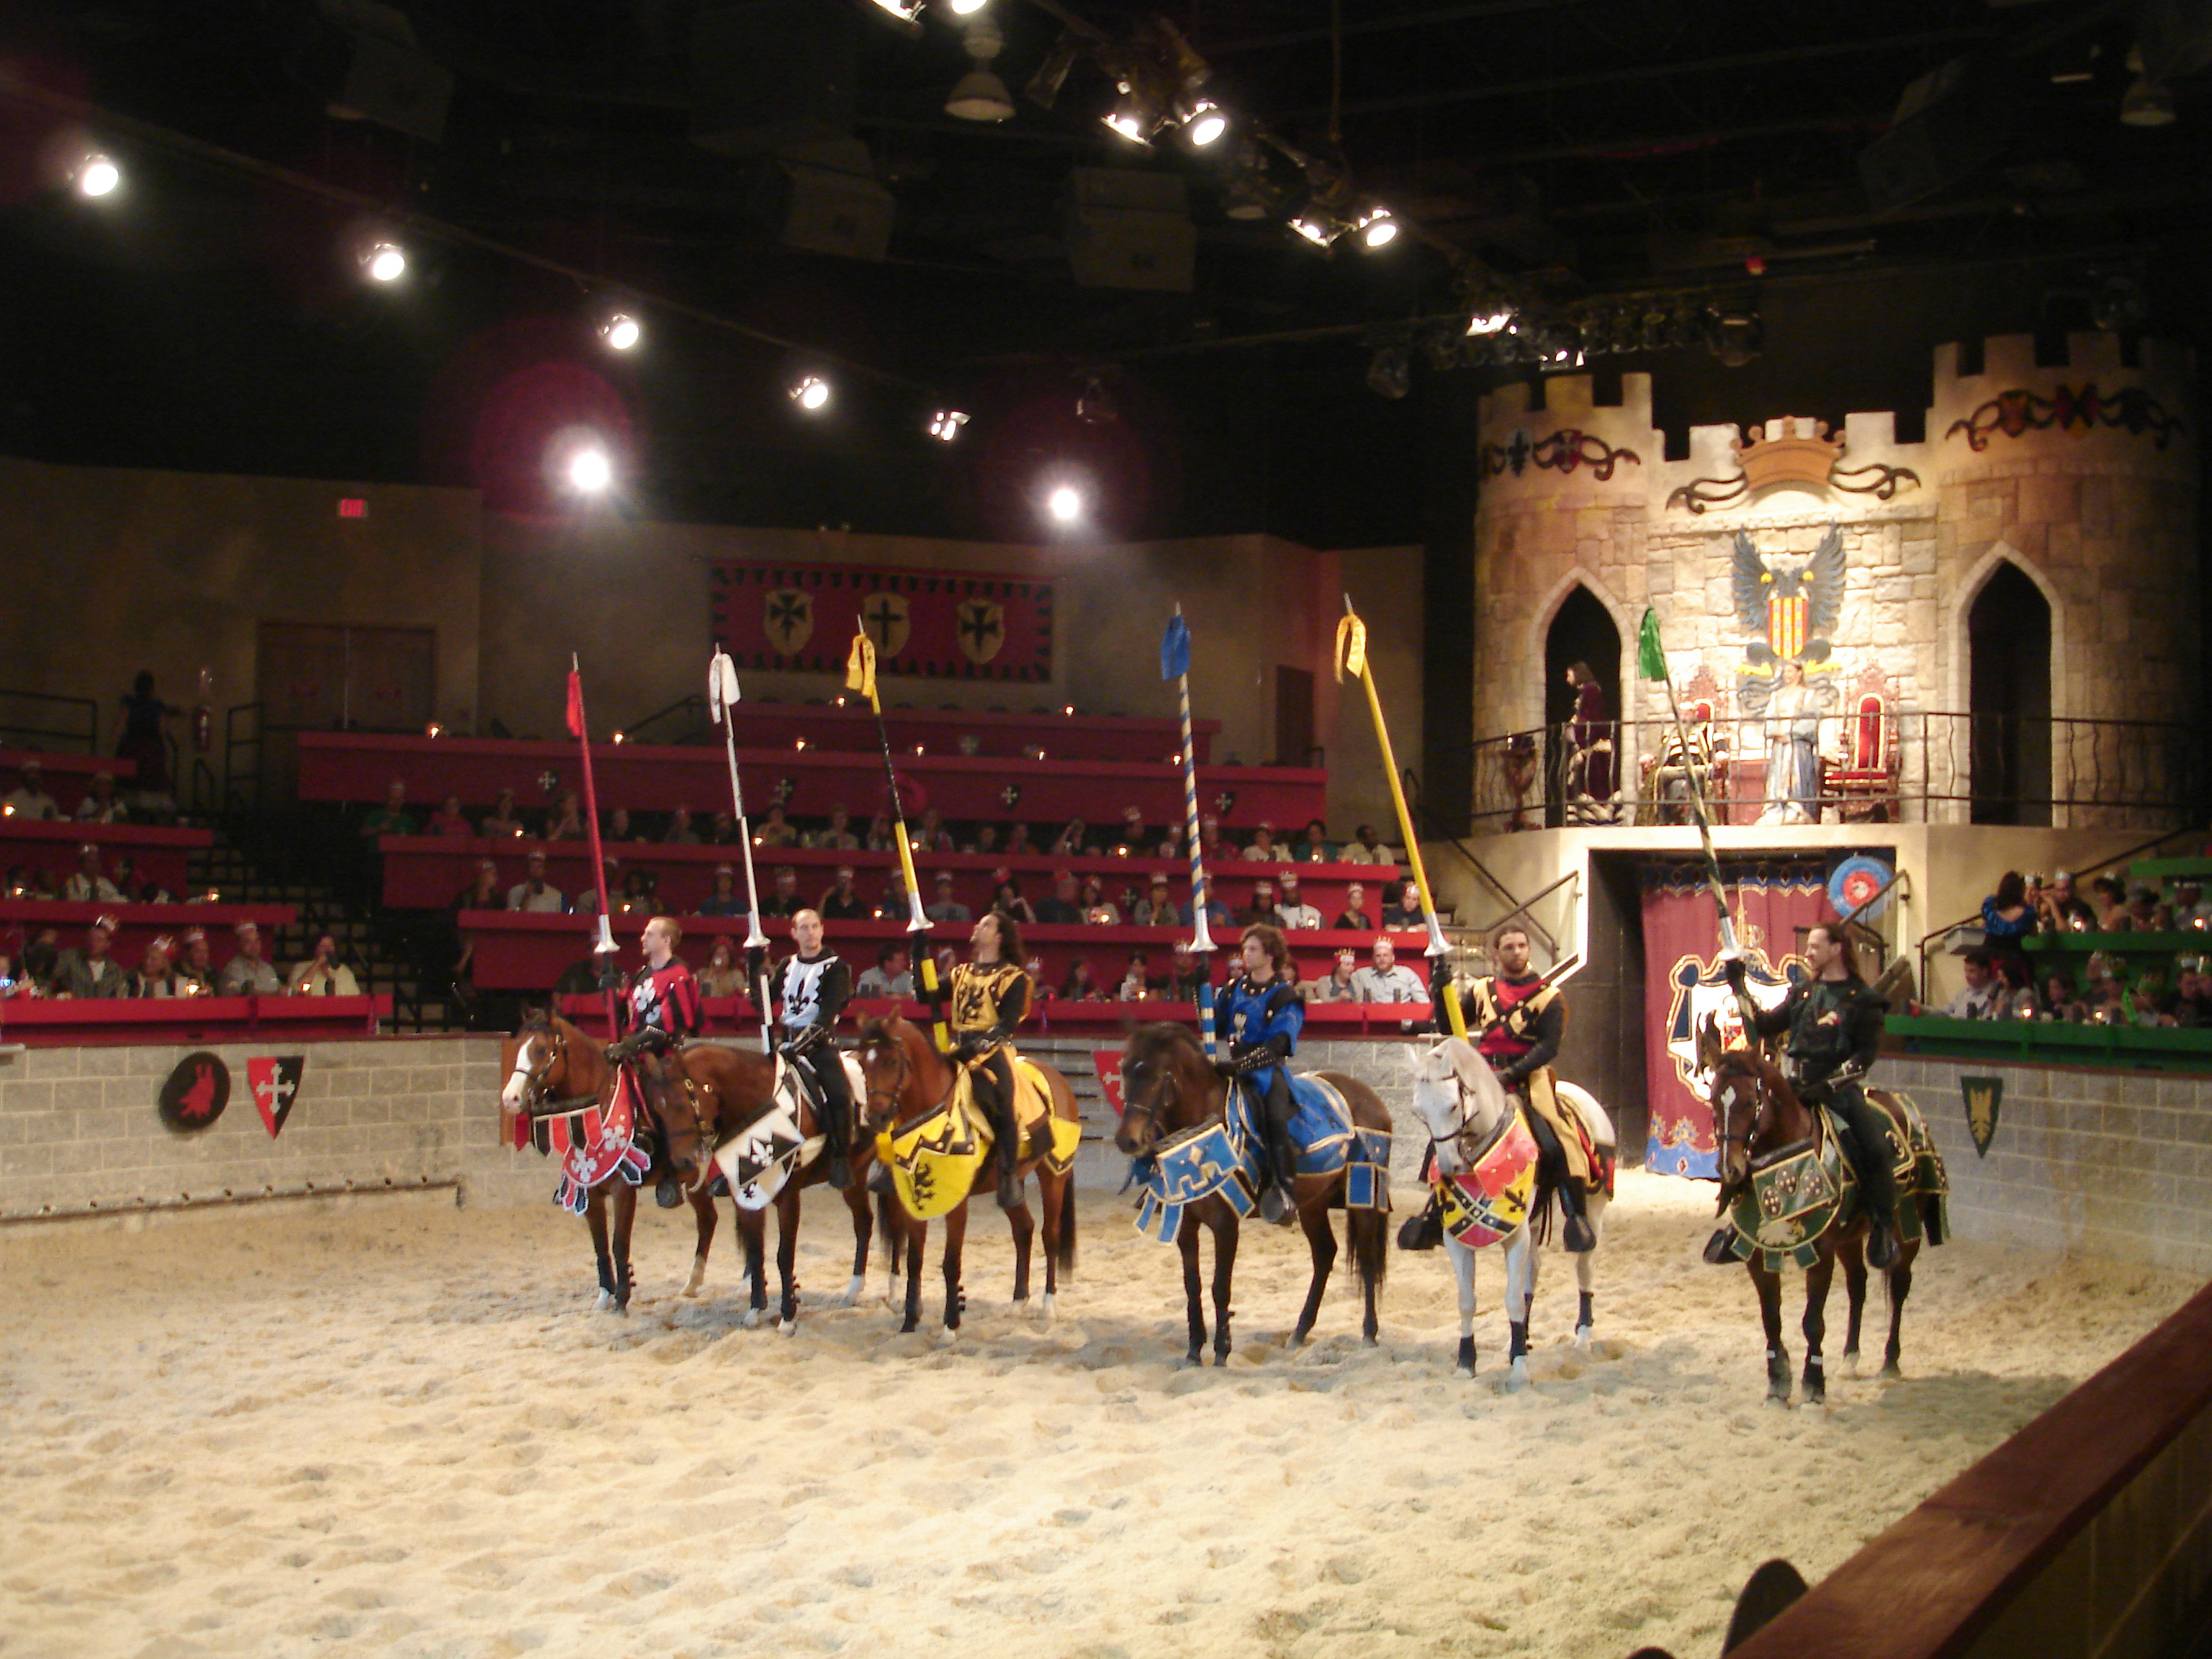 Medieval Times Baltimore is no longer available through Vacations Made Easy. It is unknown at this time when or if it will become available again/5.